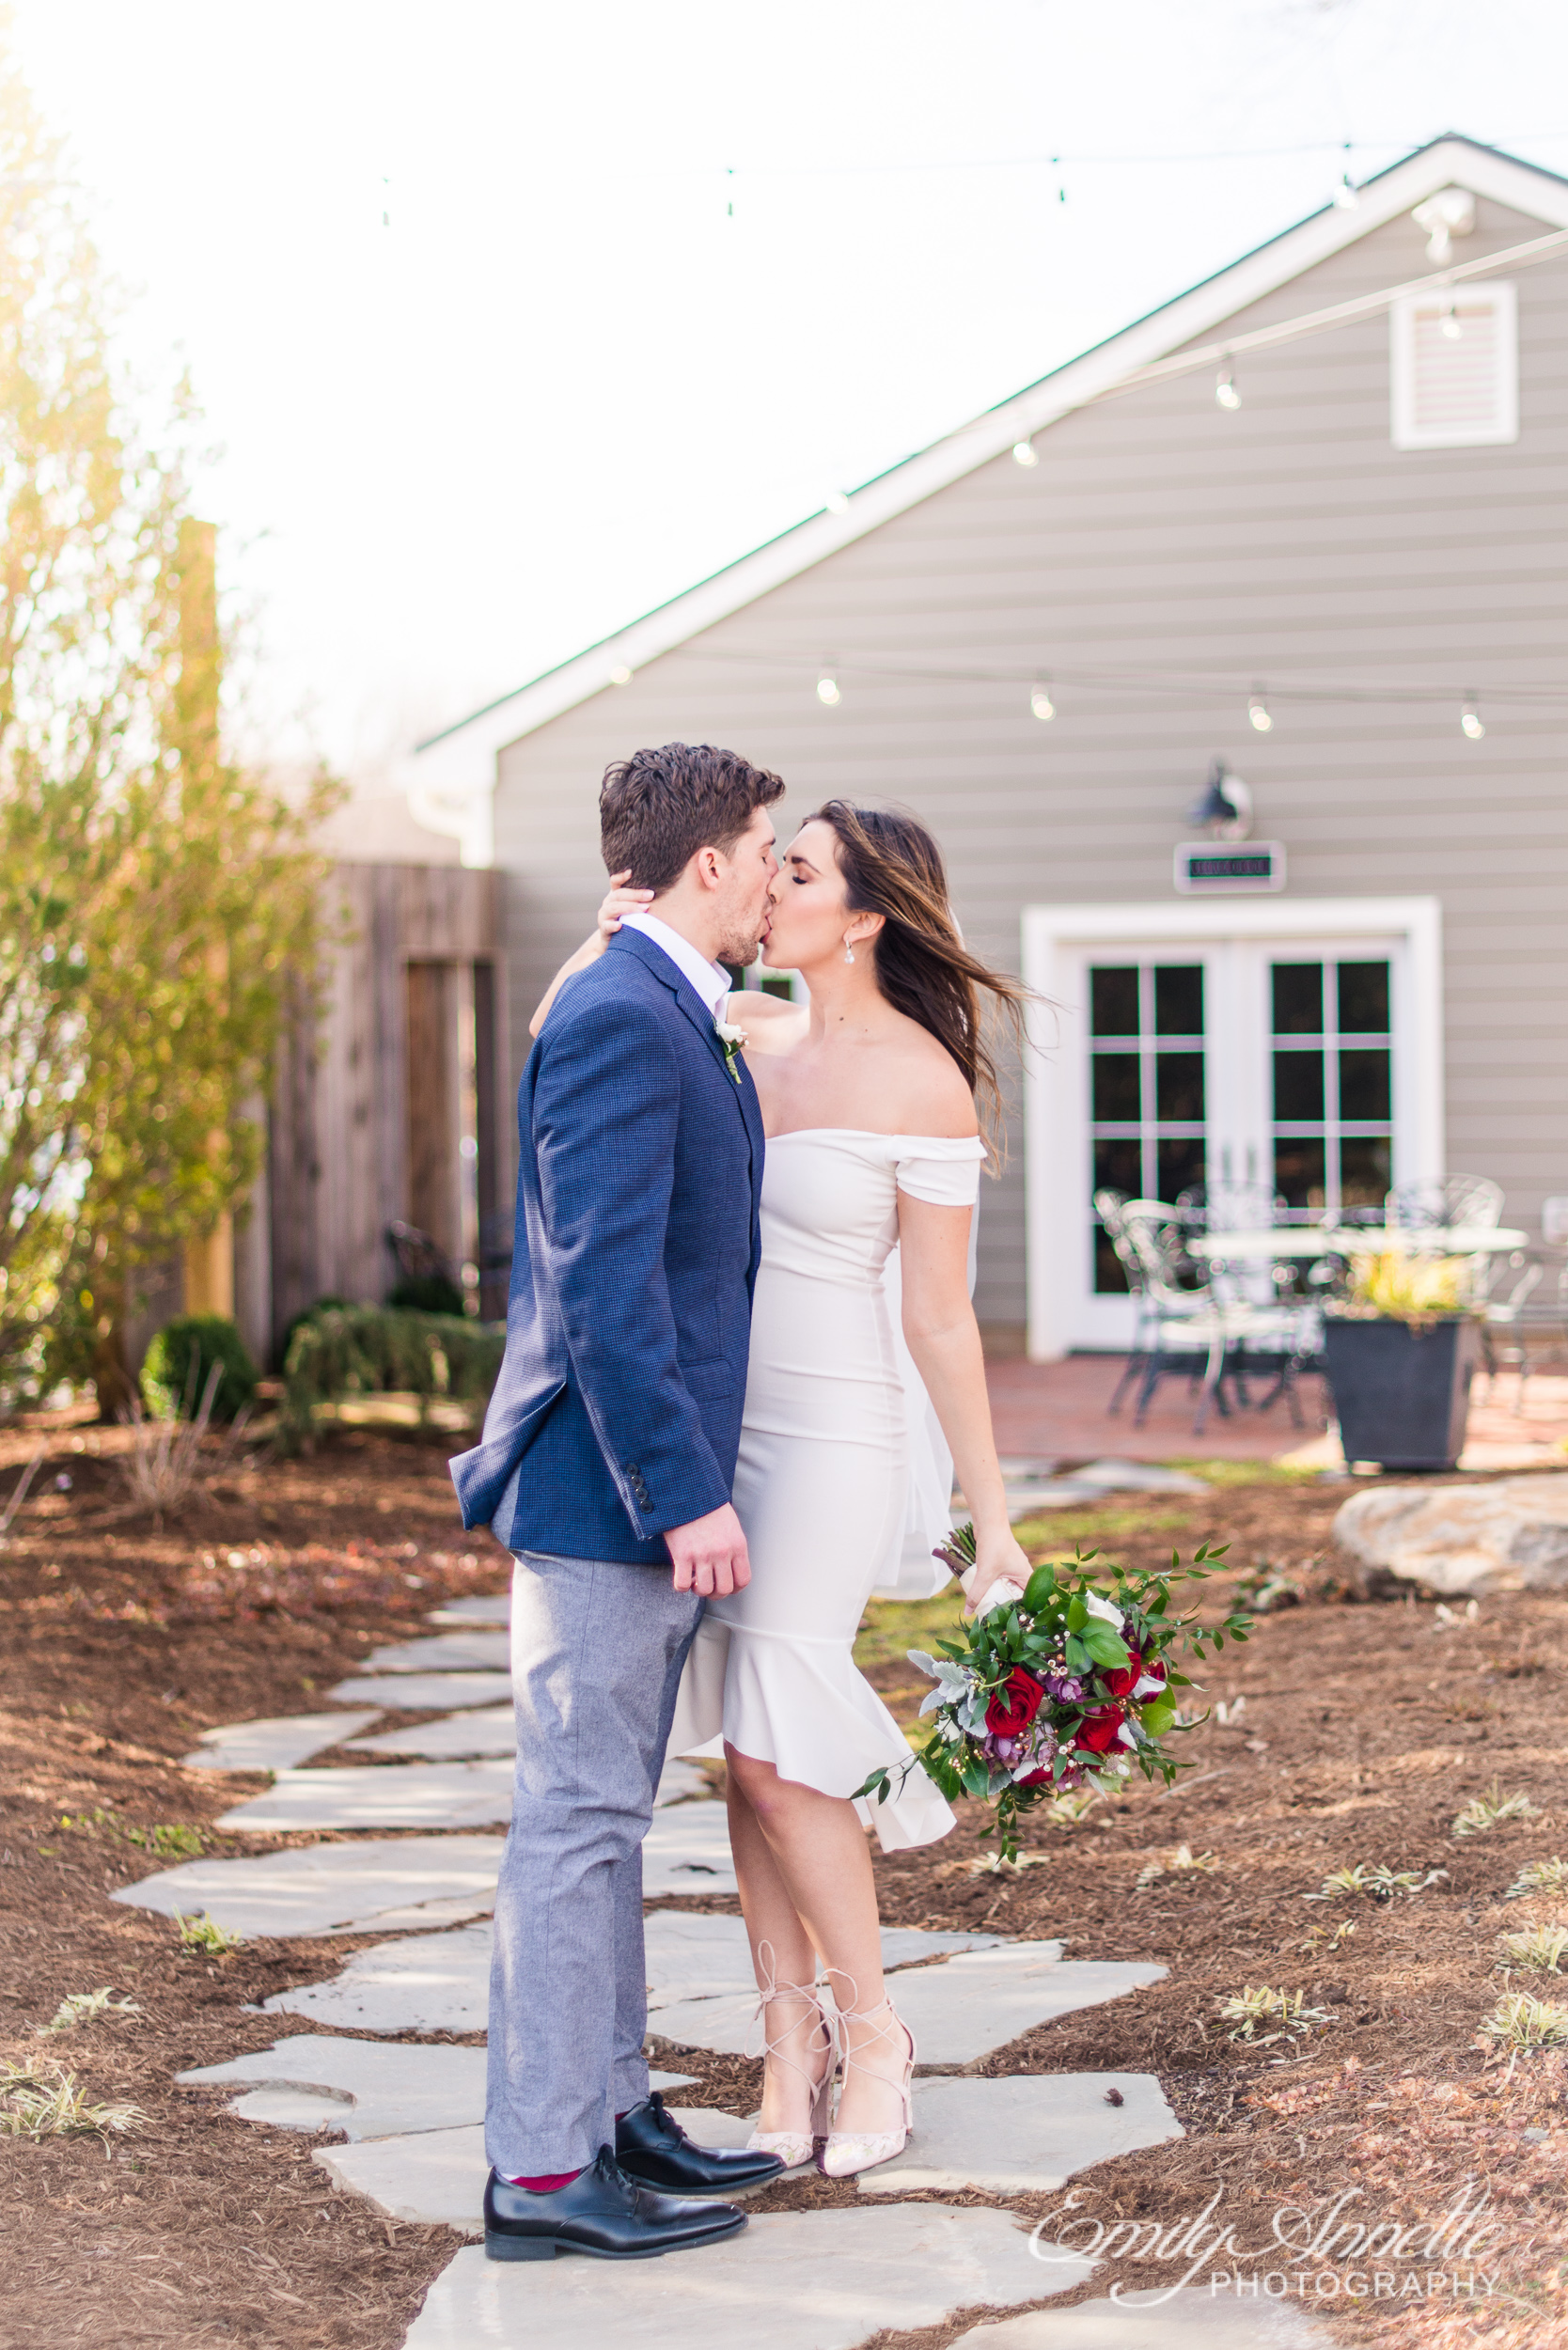 A bride and groom share a sweet kiss on their wedding day at Fleetwood Farm Winery in Leesburg, Virginia